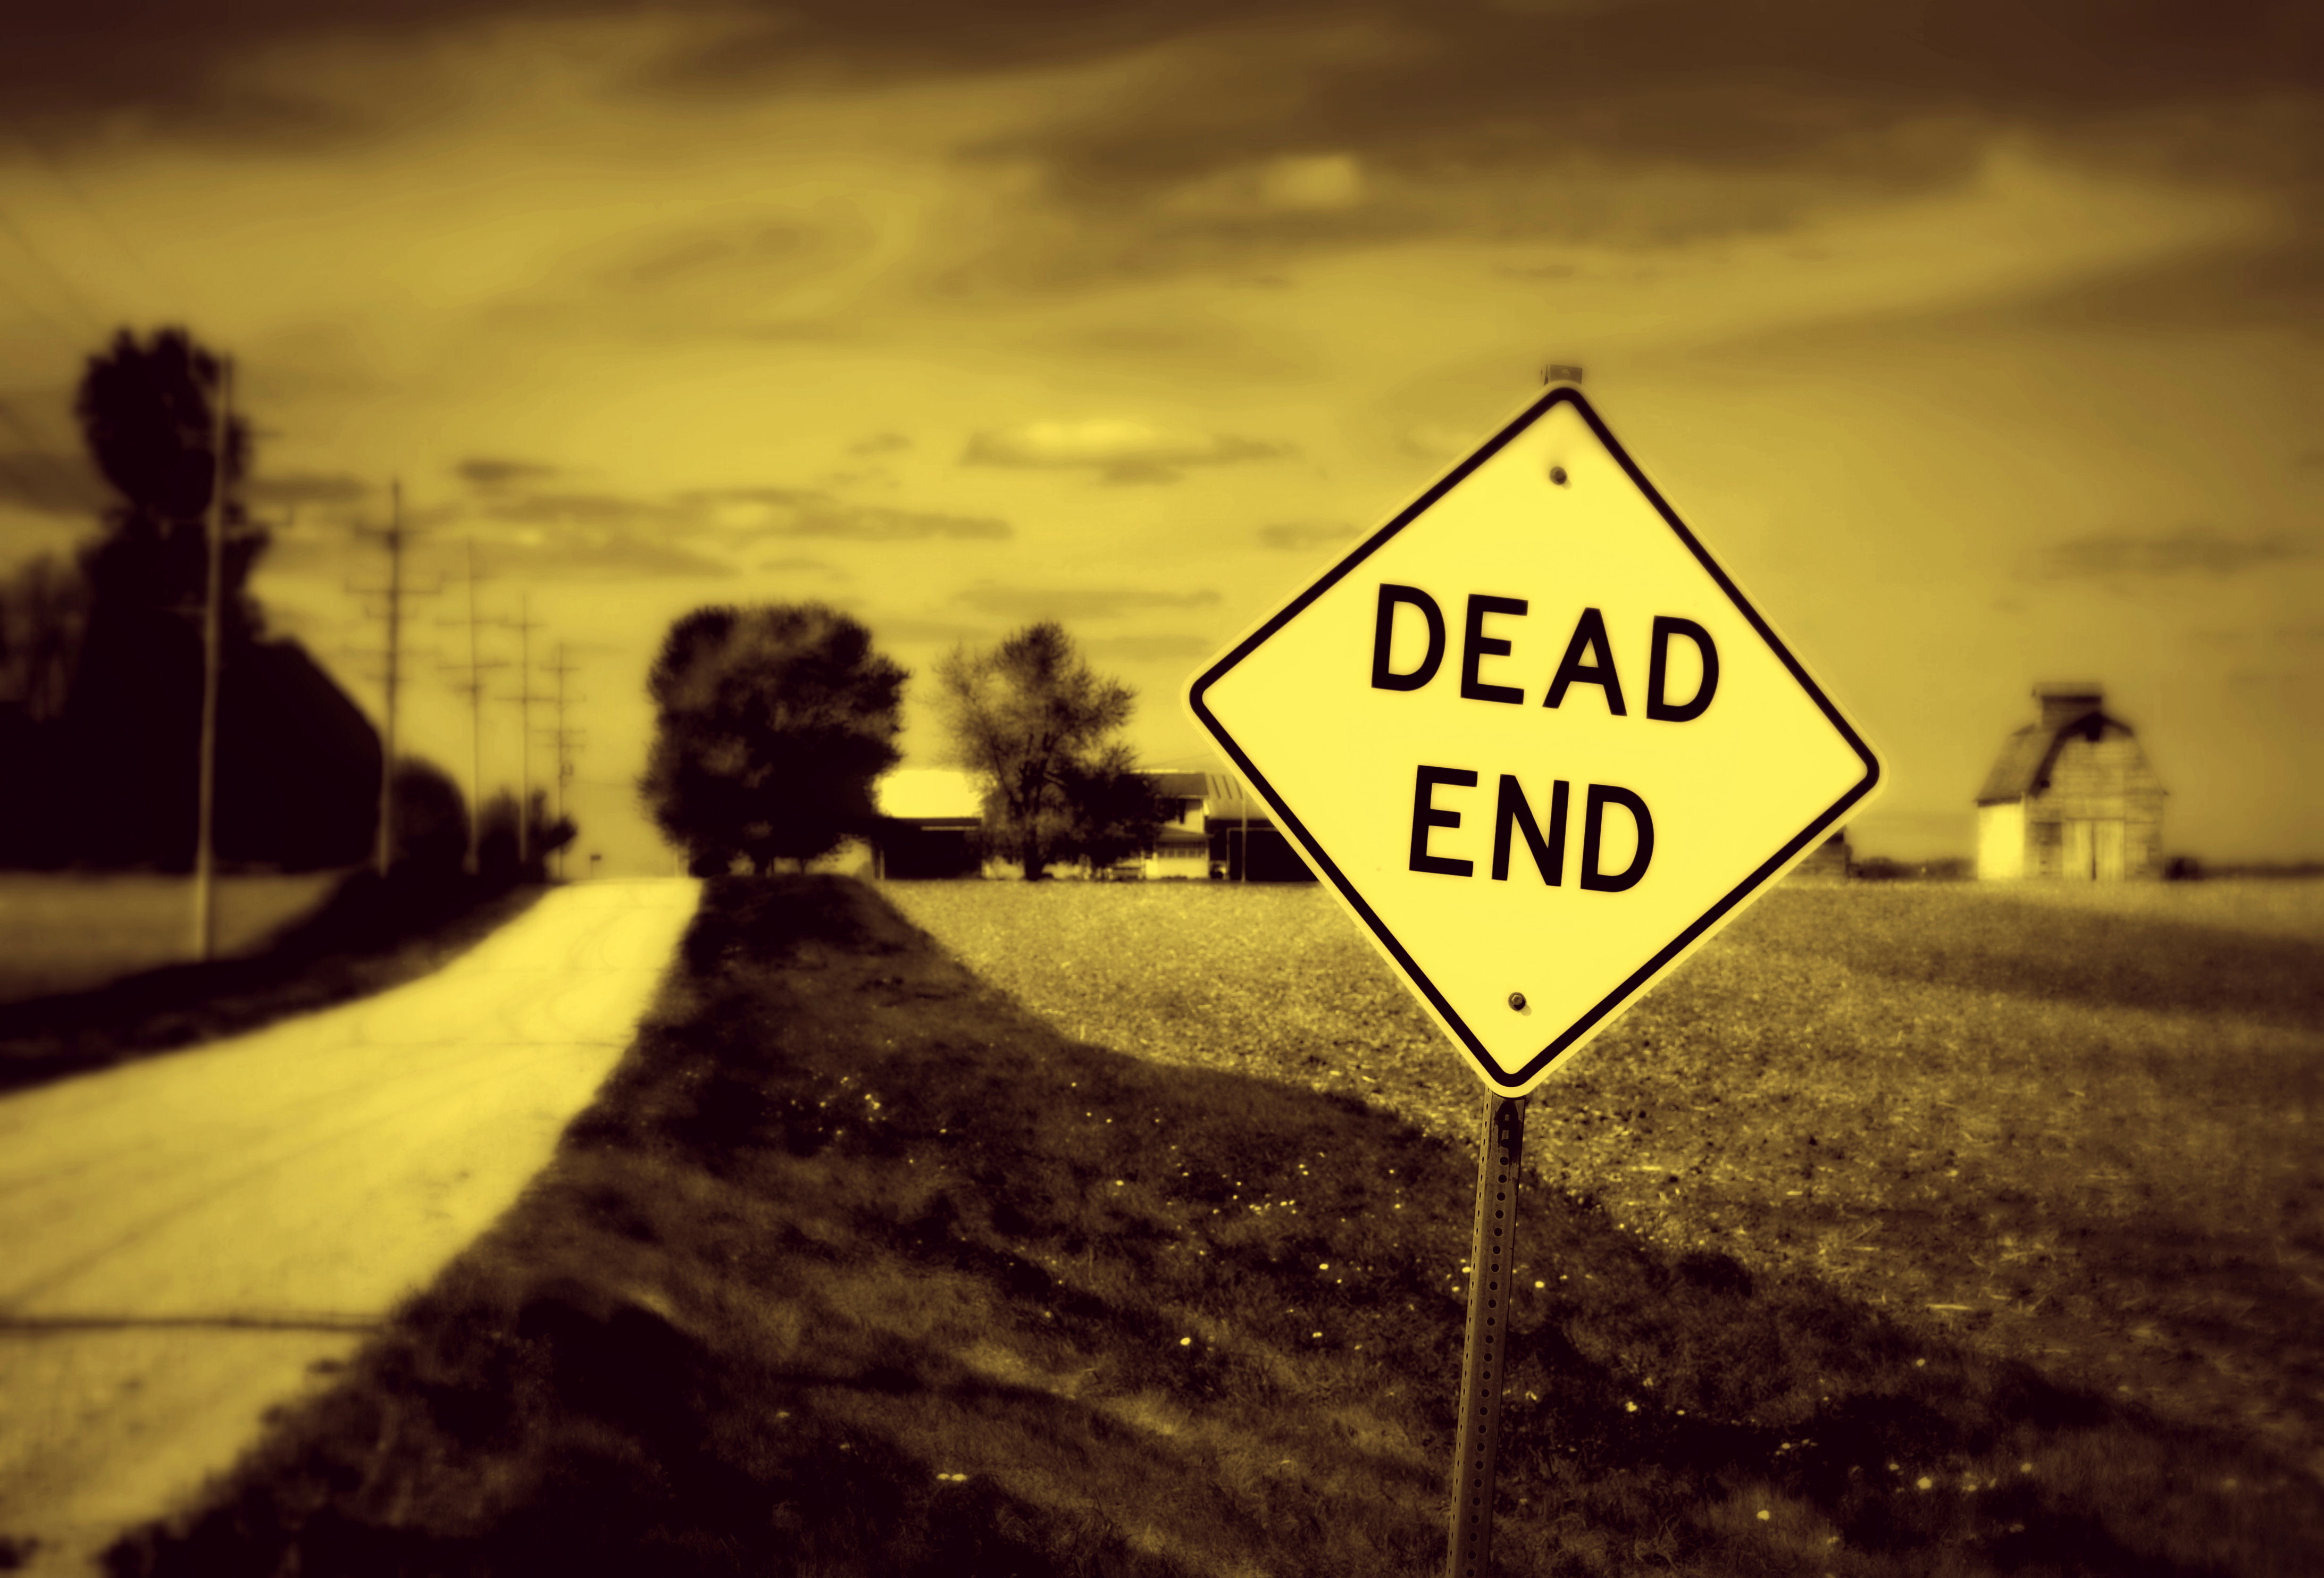 Dead end job - Image